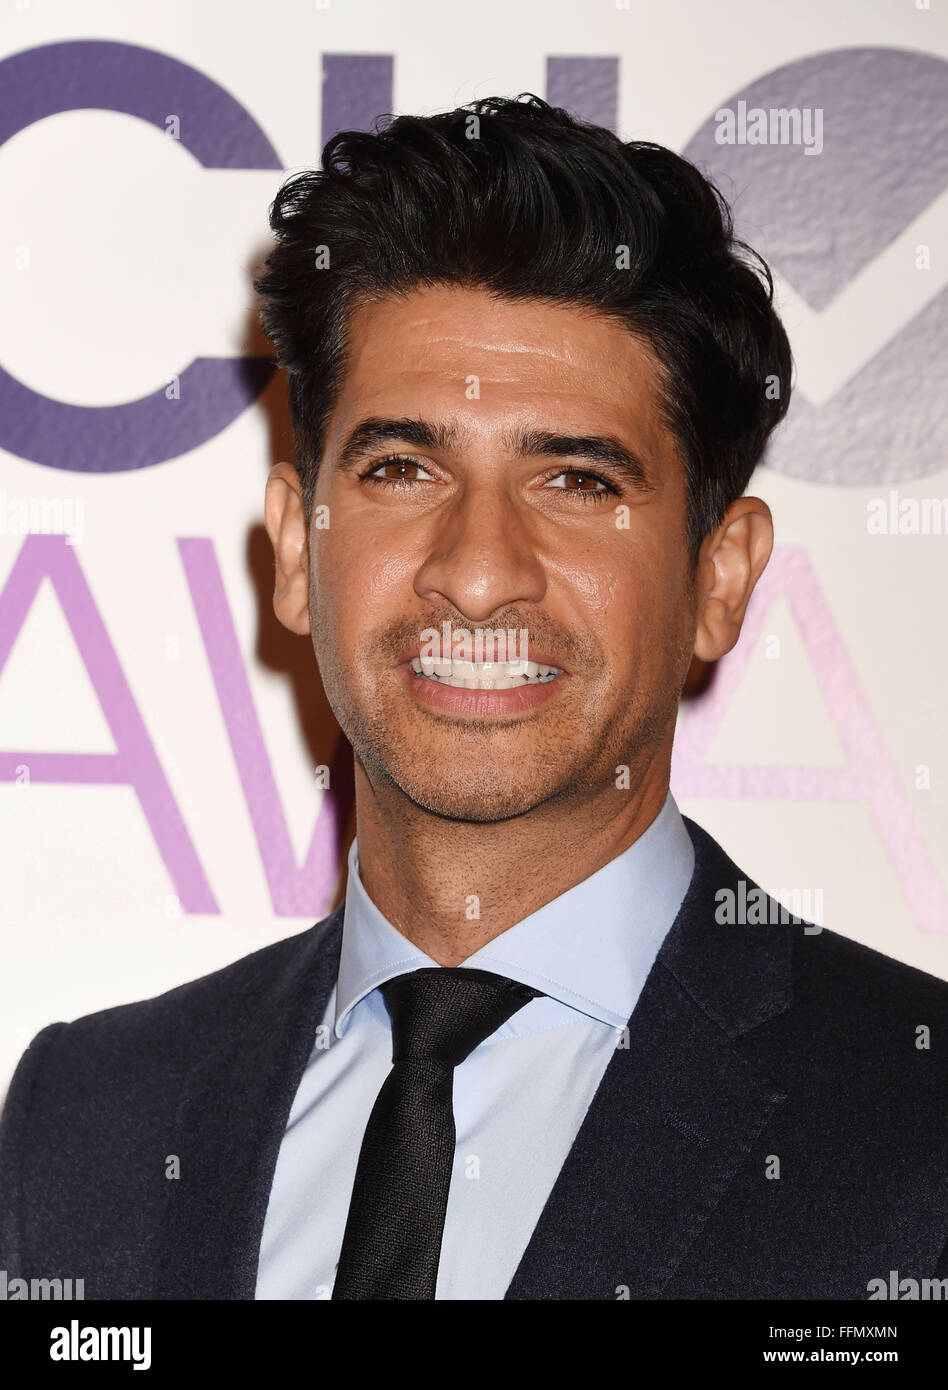 Actor Raza Jaffrey attends the People's Choice Awards 2016 - Nominations Press Conference at The Paley Center - Stock Image